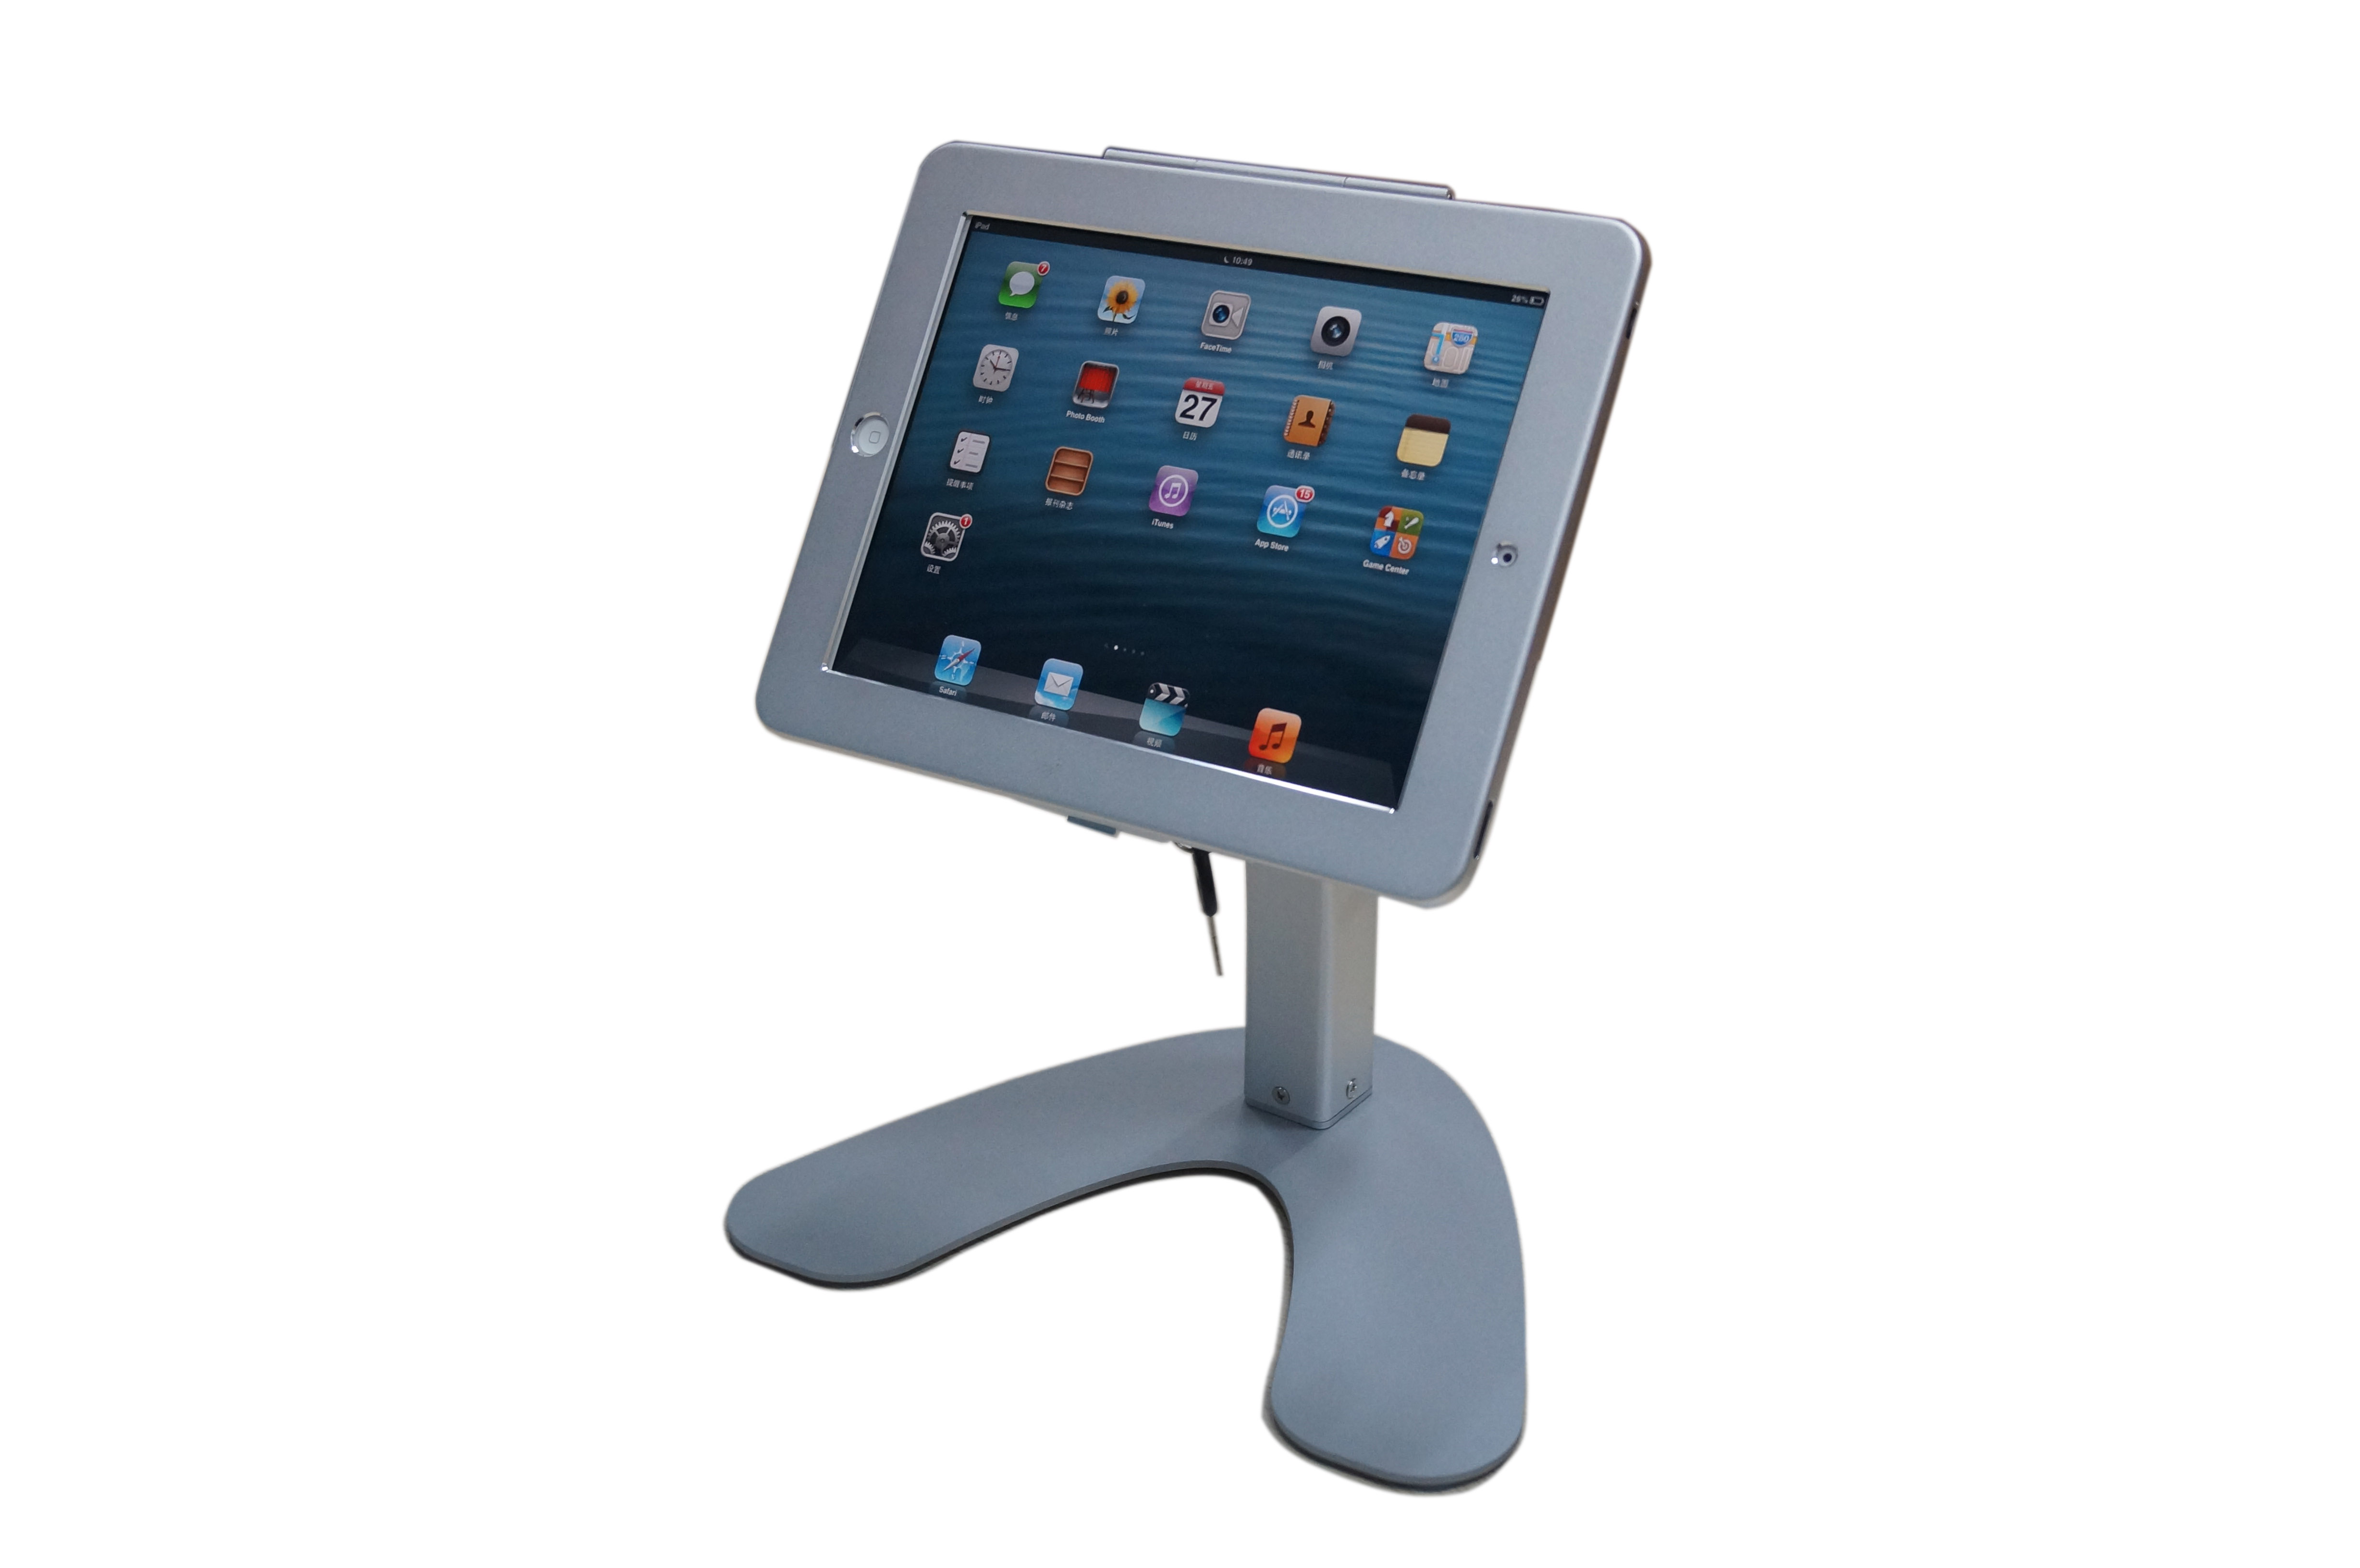 P9 Ipad Desktop Stand With Lock Tv Wall Mount Tv